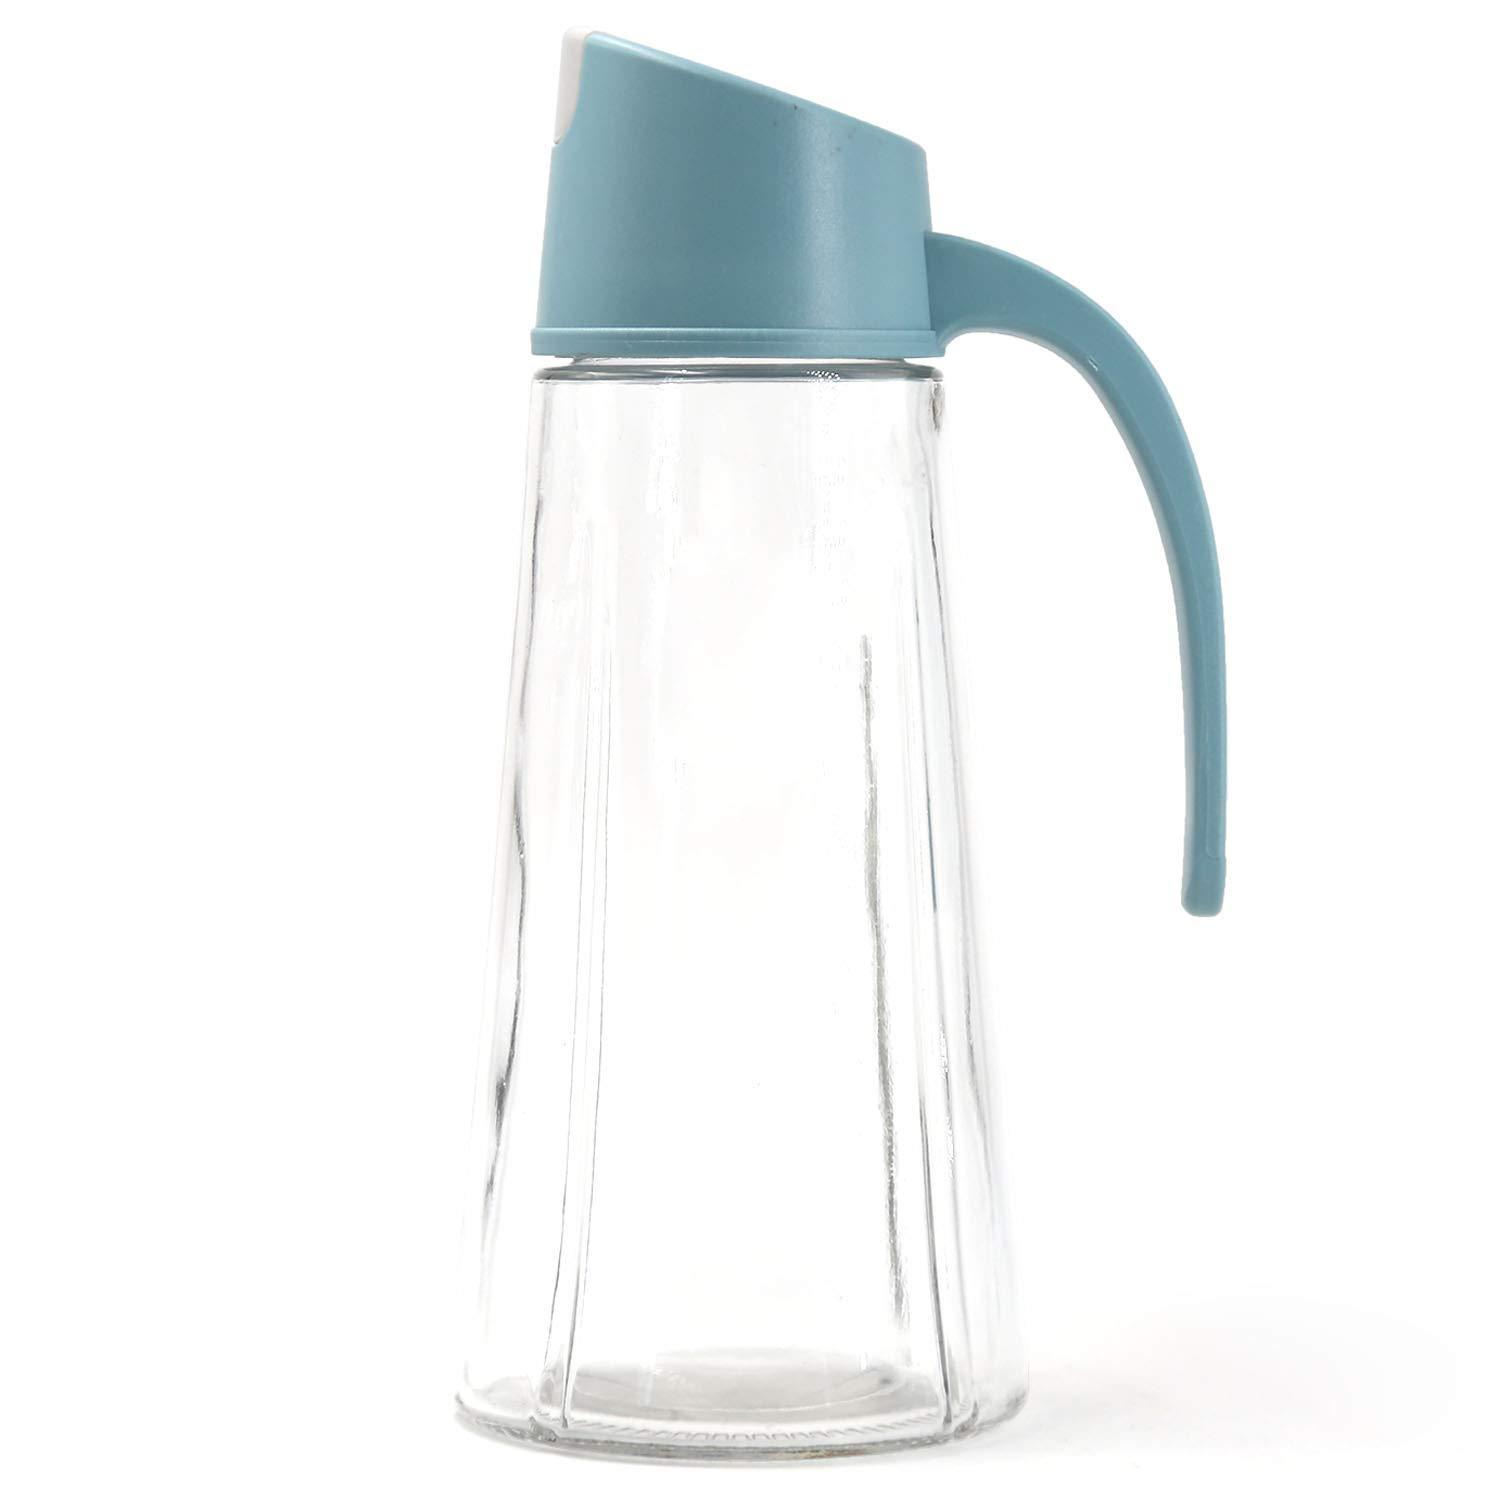 OitiO Non-Drip Glass Oil & Vinegar Container and Dispenser Bottle with Automatic Cap, Leakproof, Automatic Stopper, Precise-Pour Spout, and Non-Slip Handle,20.5oz (Blue, 500ML) and Non-Slip Handle, 20.5oz (Blue